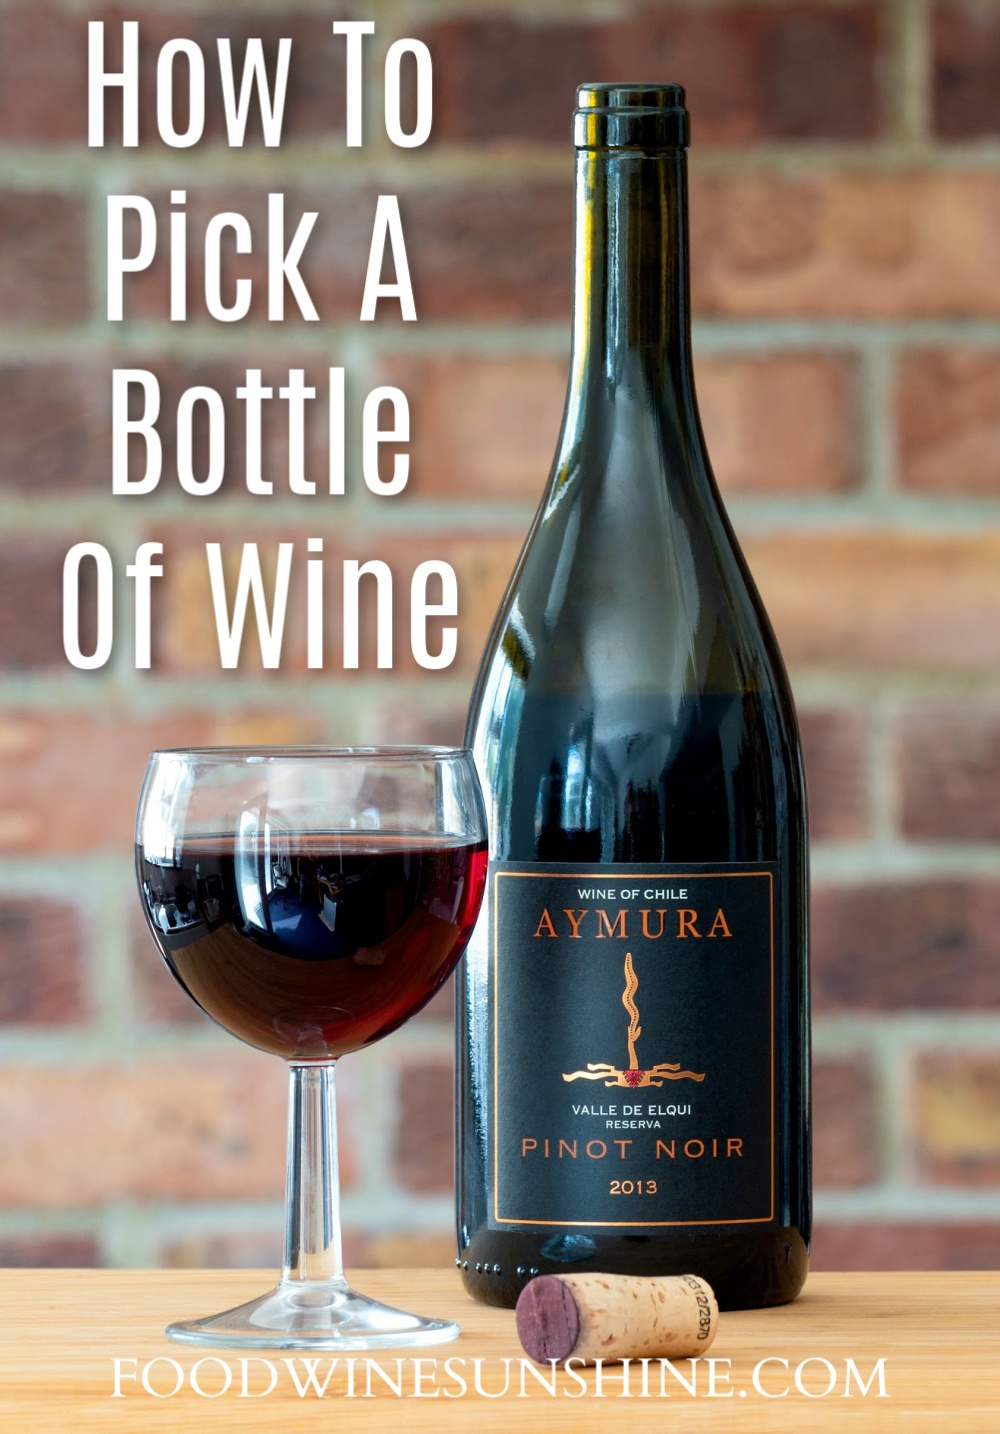 How To Pick A Bottle Of Wine By Looking At The Label